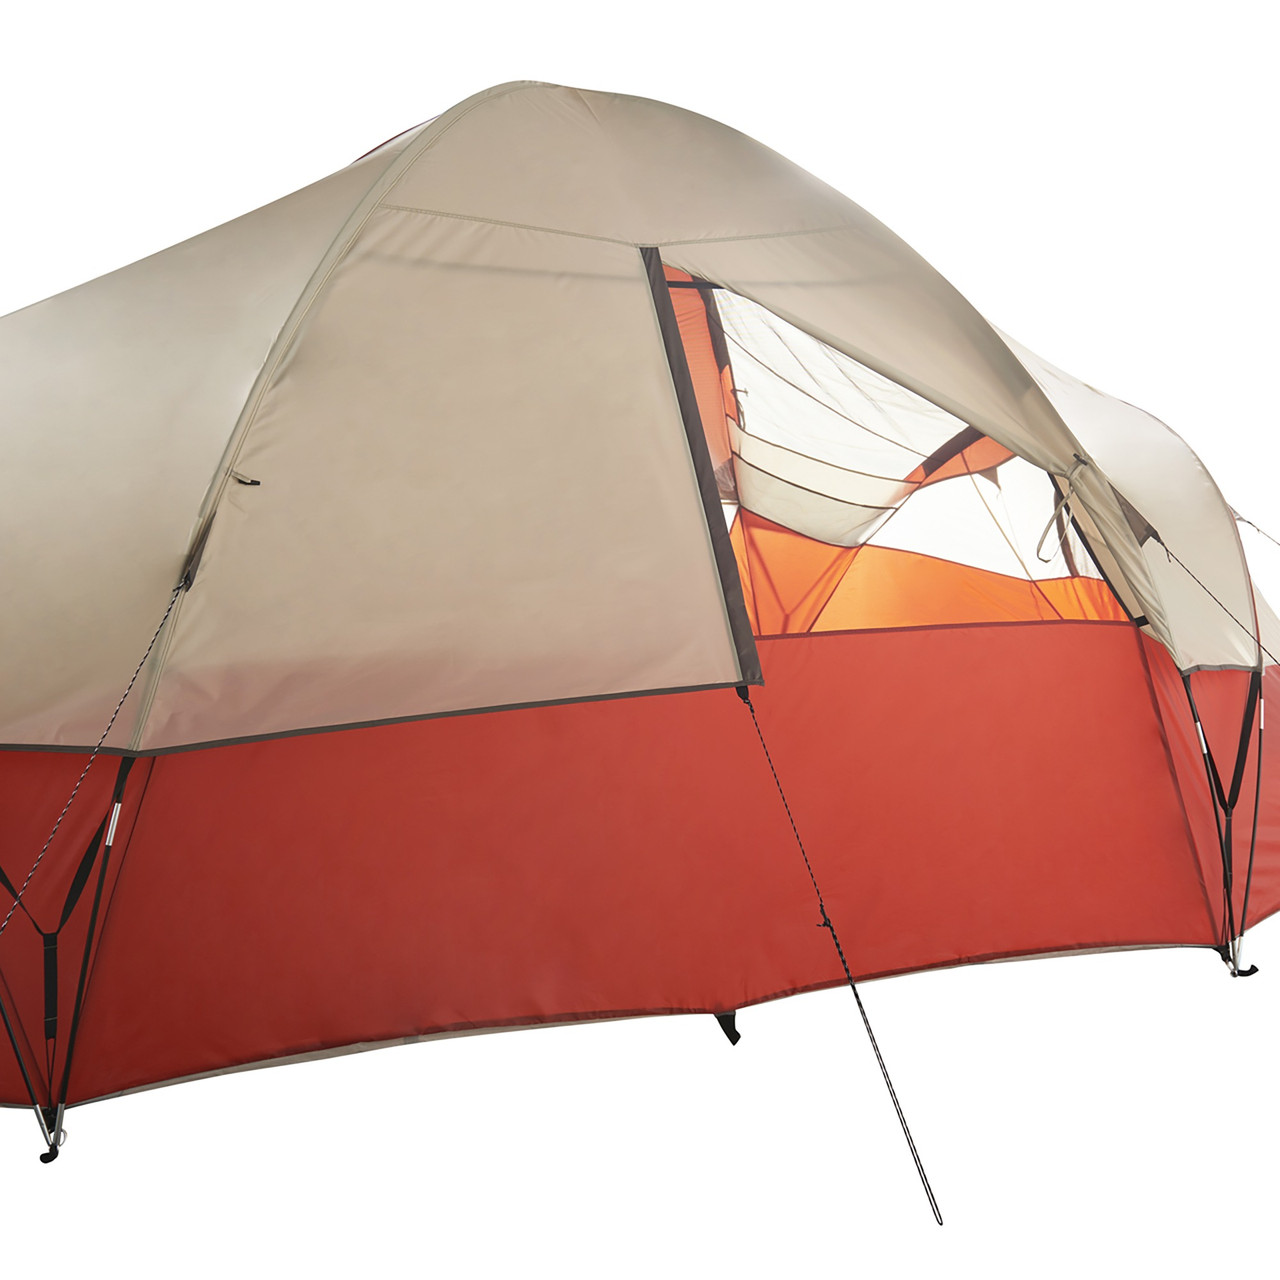 Wenzel Bristlecone 8 Person Dome Tent, showing rear window, partially closed